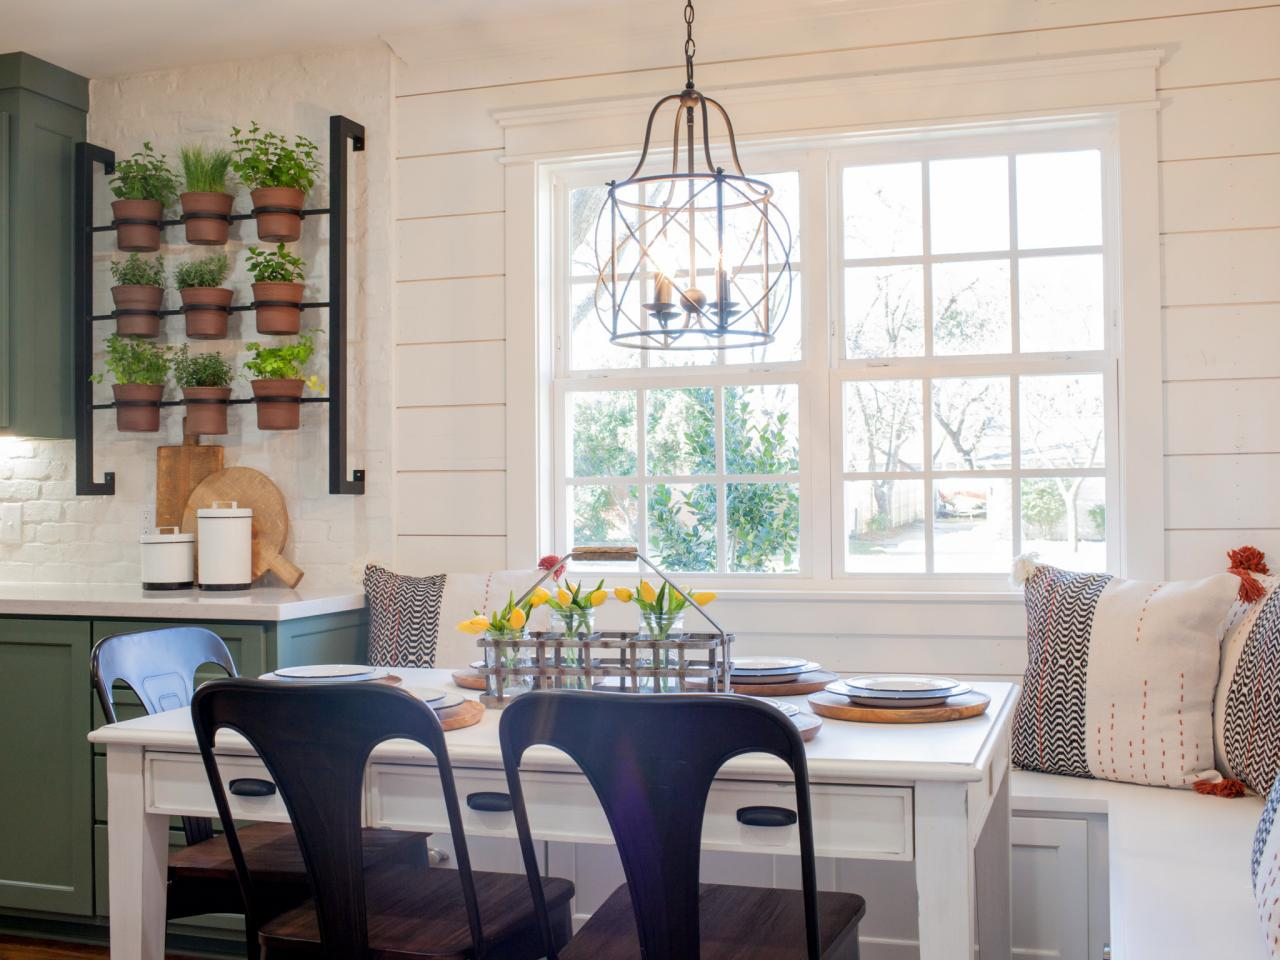 Country Breakfast Nook With Bench Seating, Natural Lighting And Simple  Country Table Setting